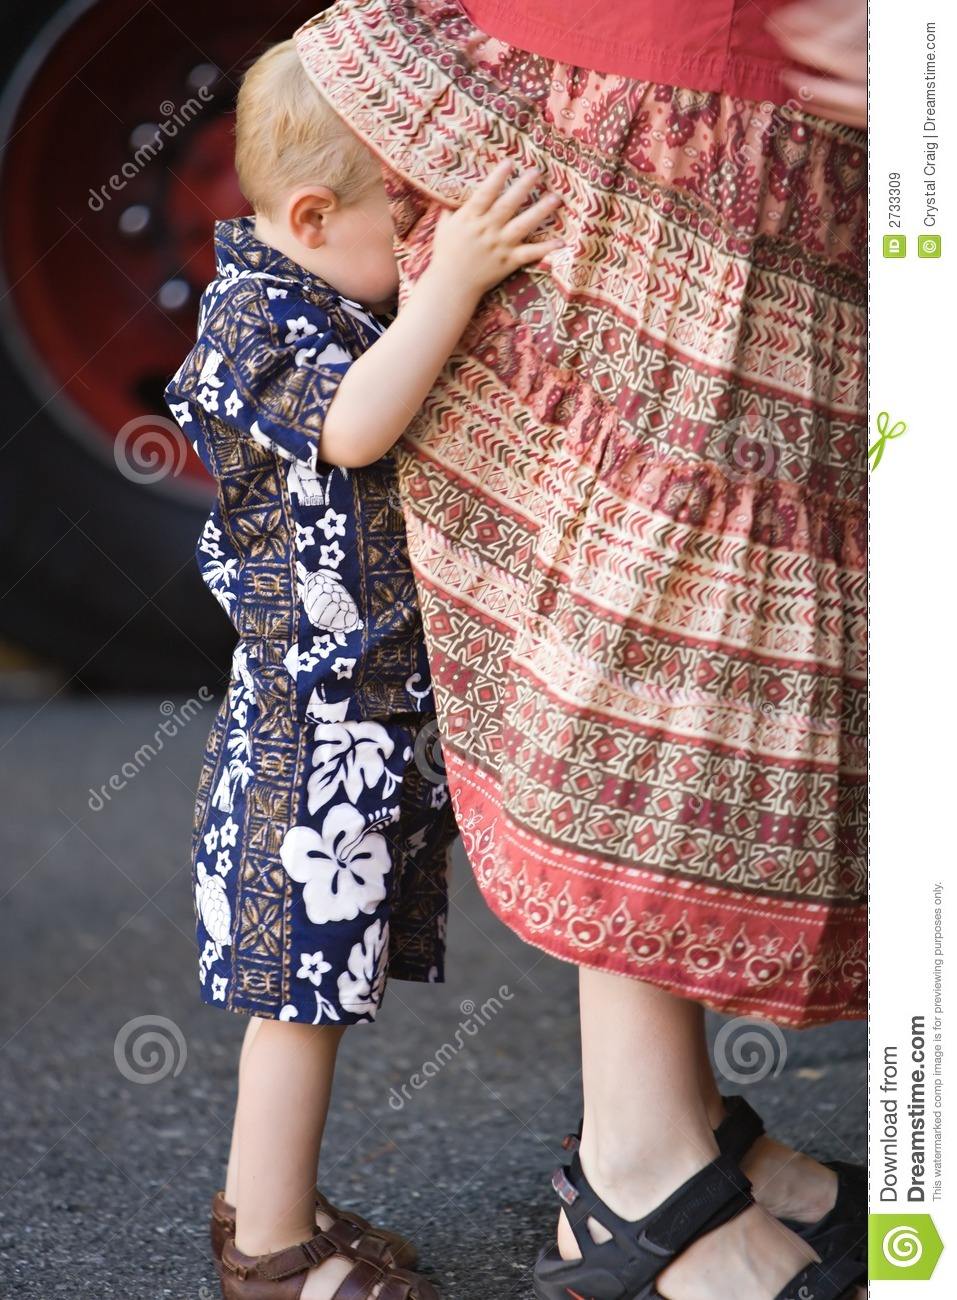 Getting Moms Attention Royalty Free Stock Images Image